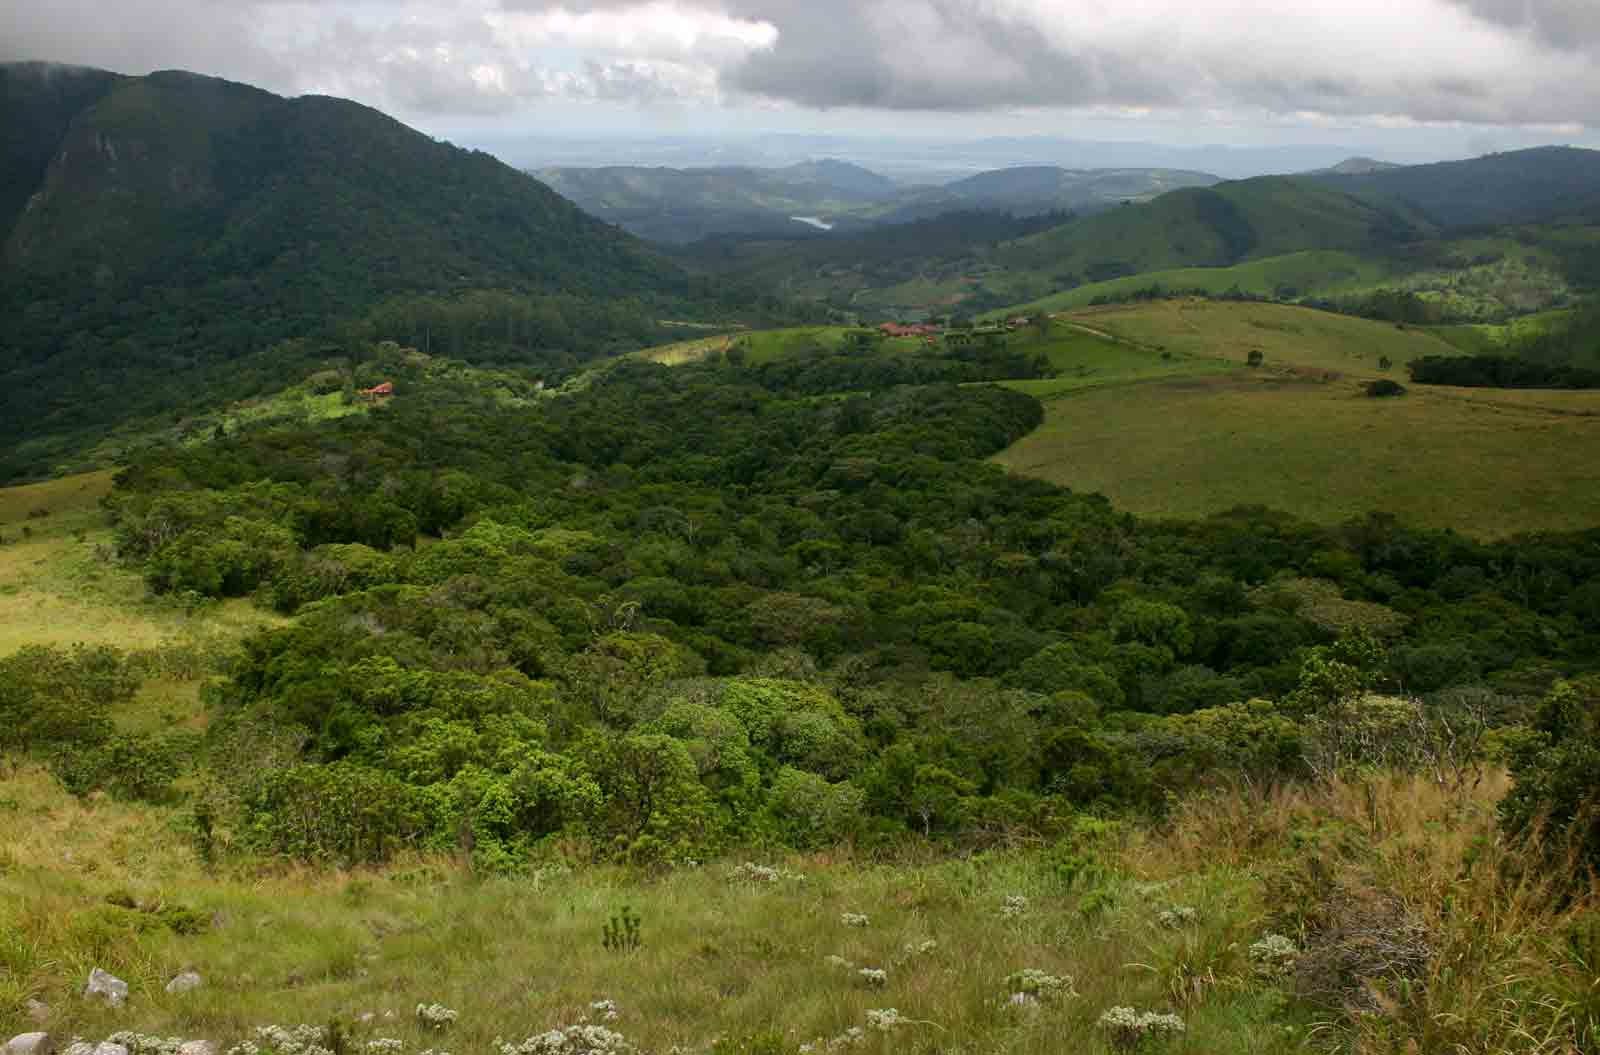 View of the Cloudlands' Forest taken from the summit of Chinziwa.